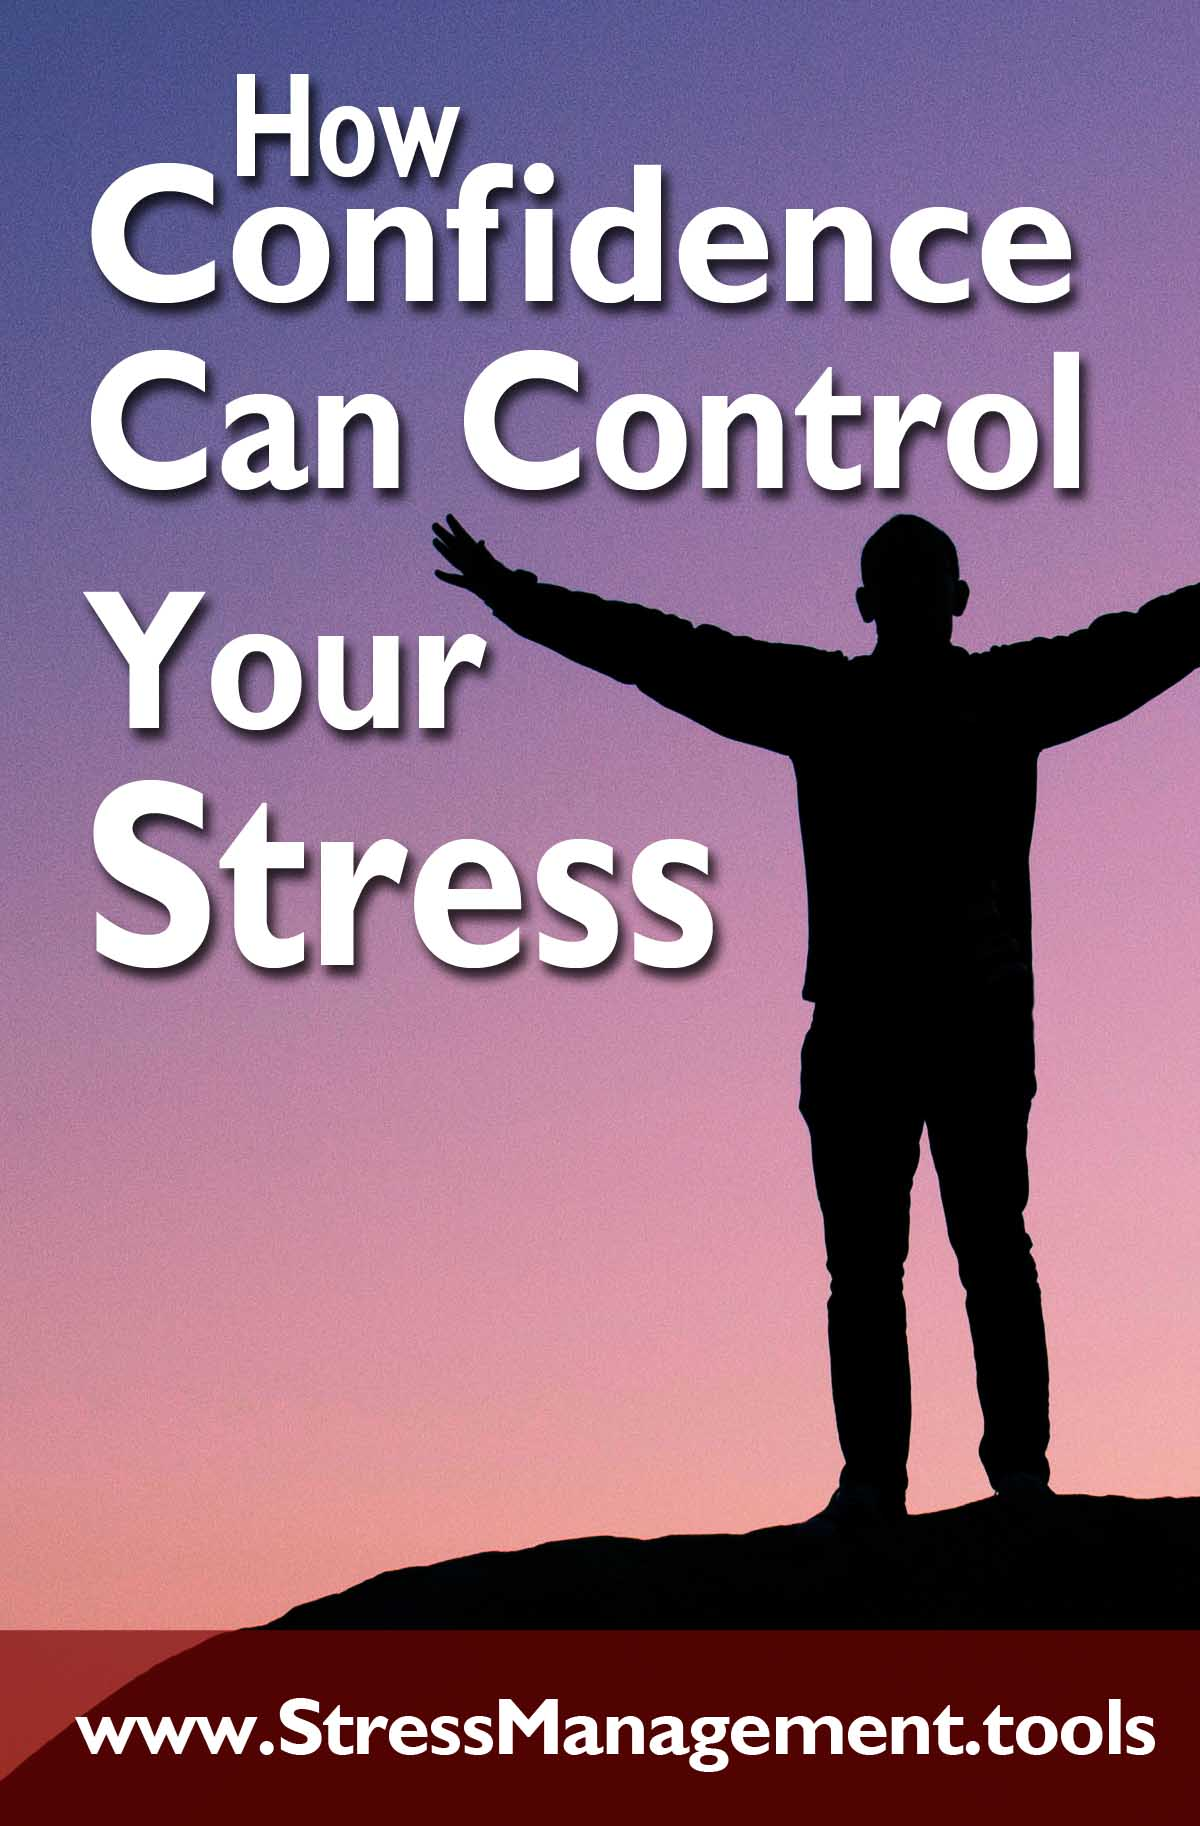 How Confidence Can Control Your Stress